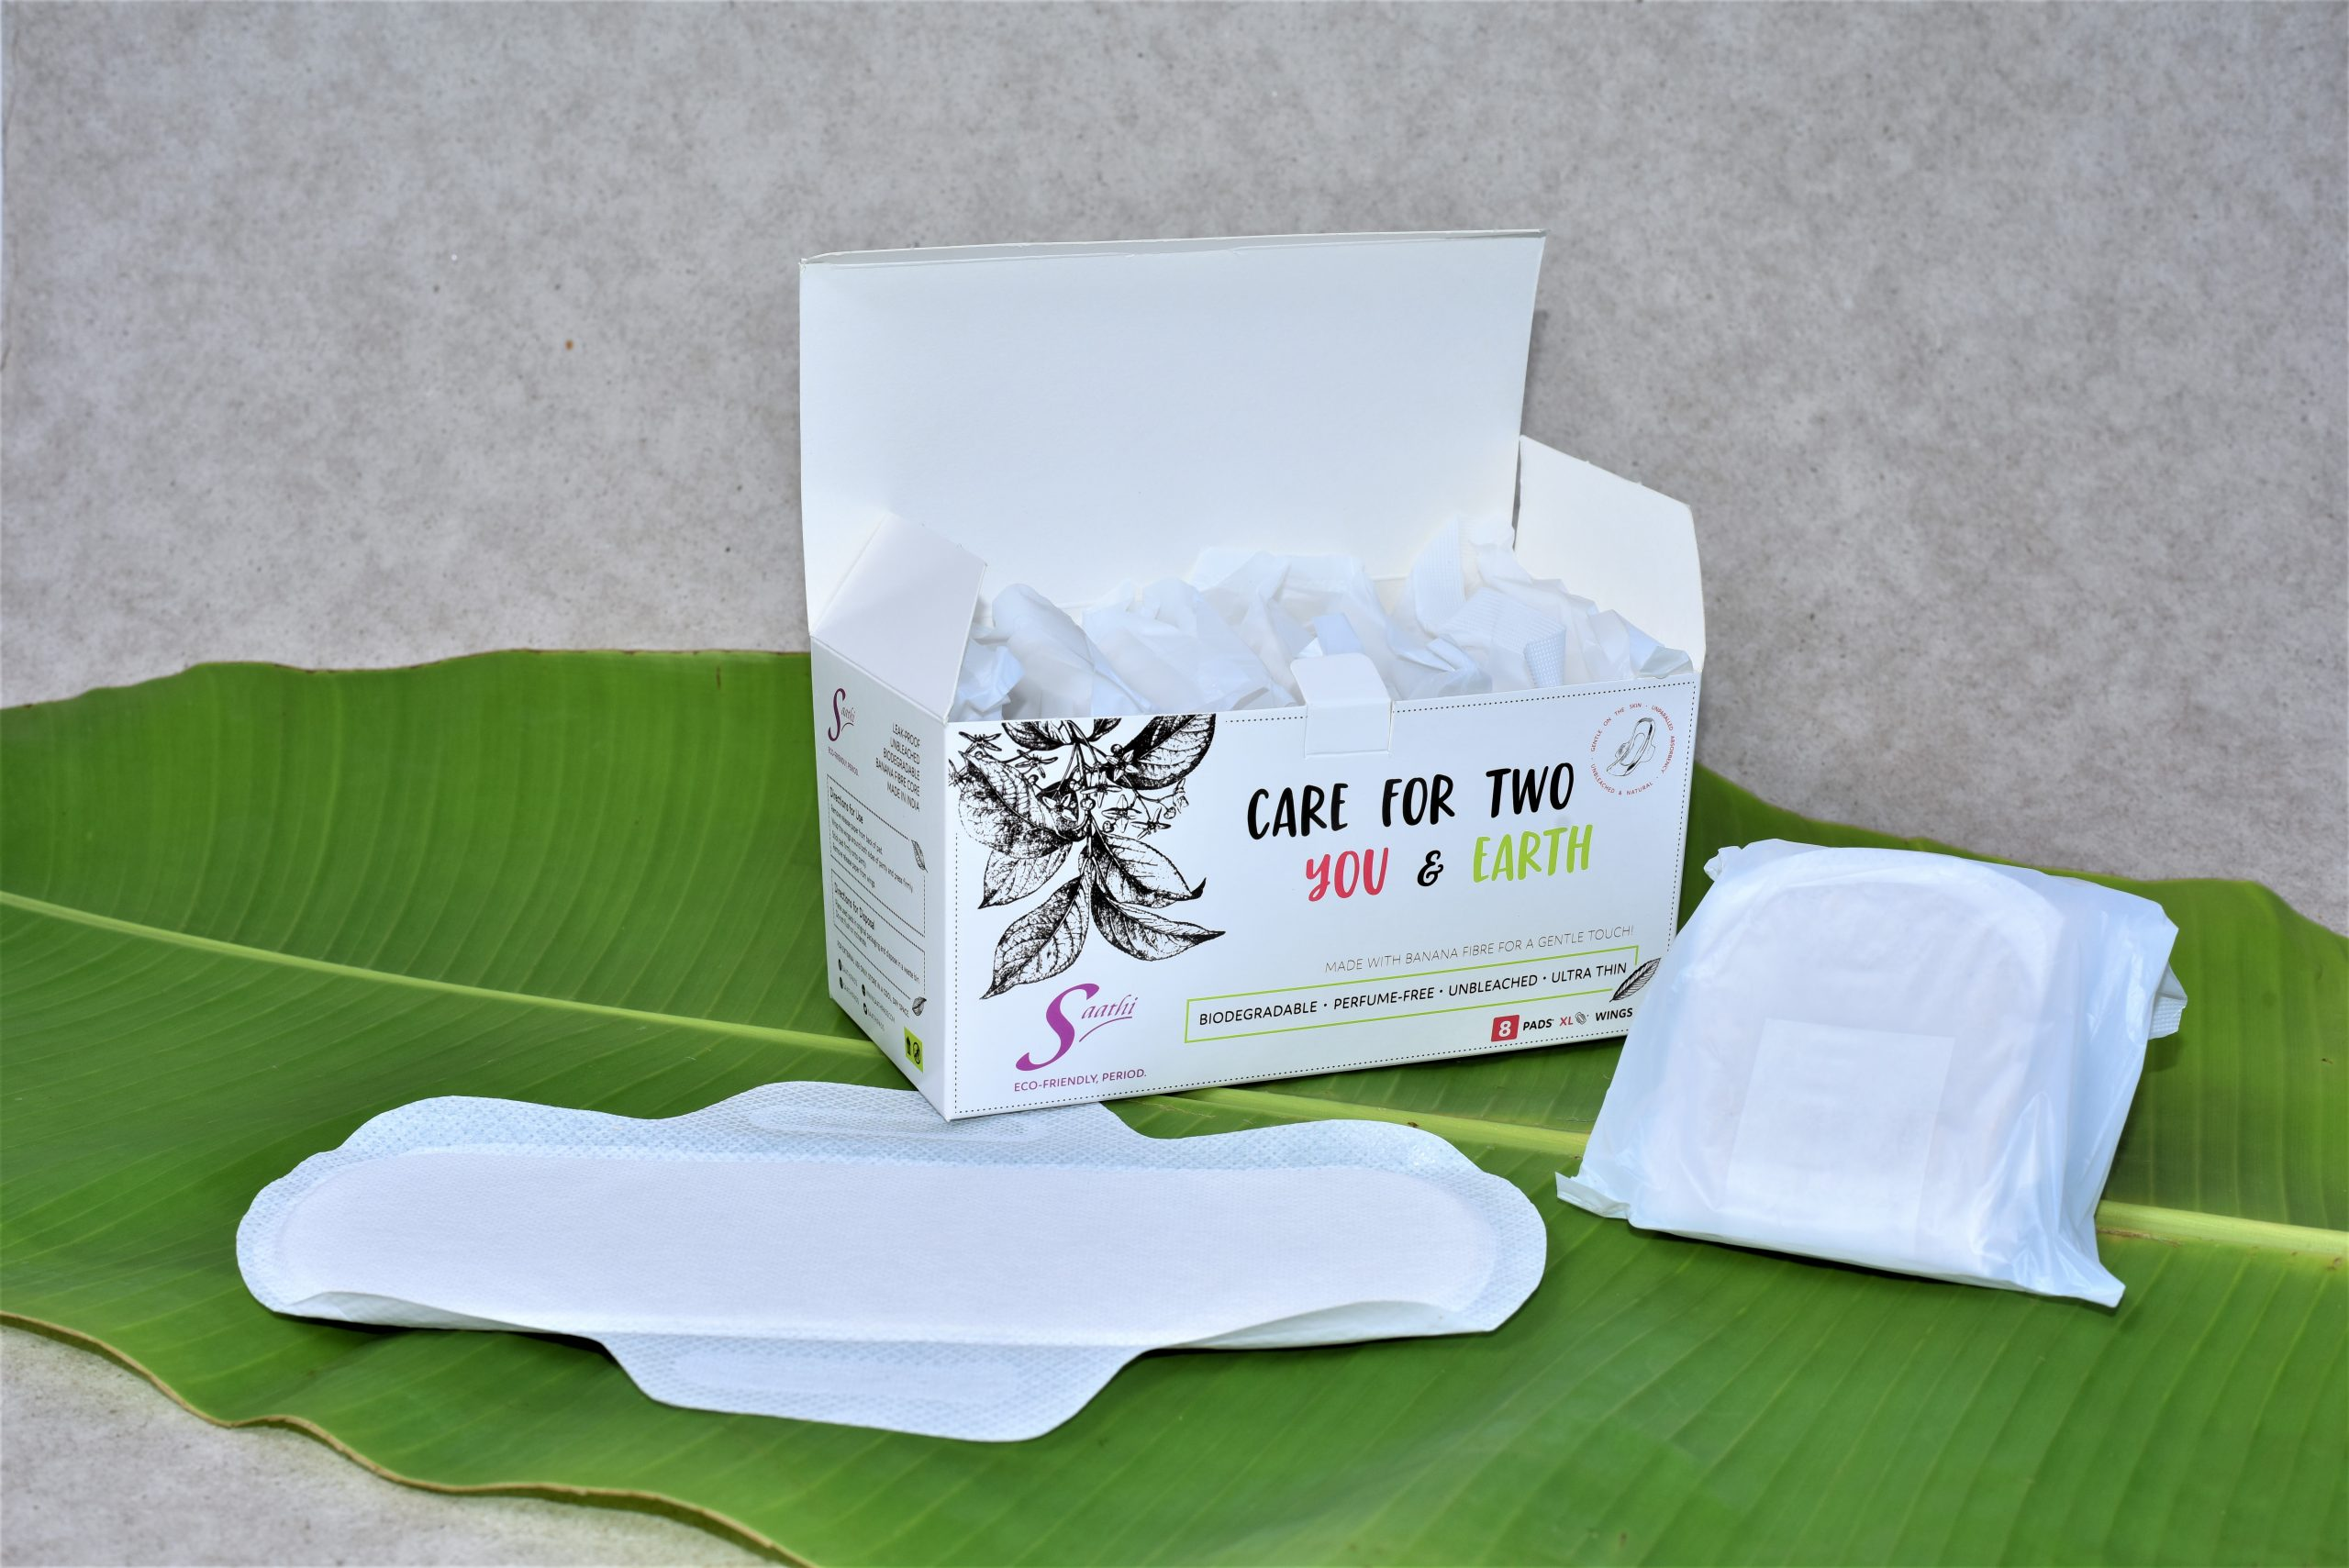 Bio degradable sanitary pads | Healthspectra